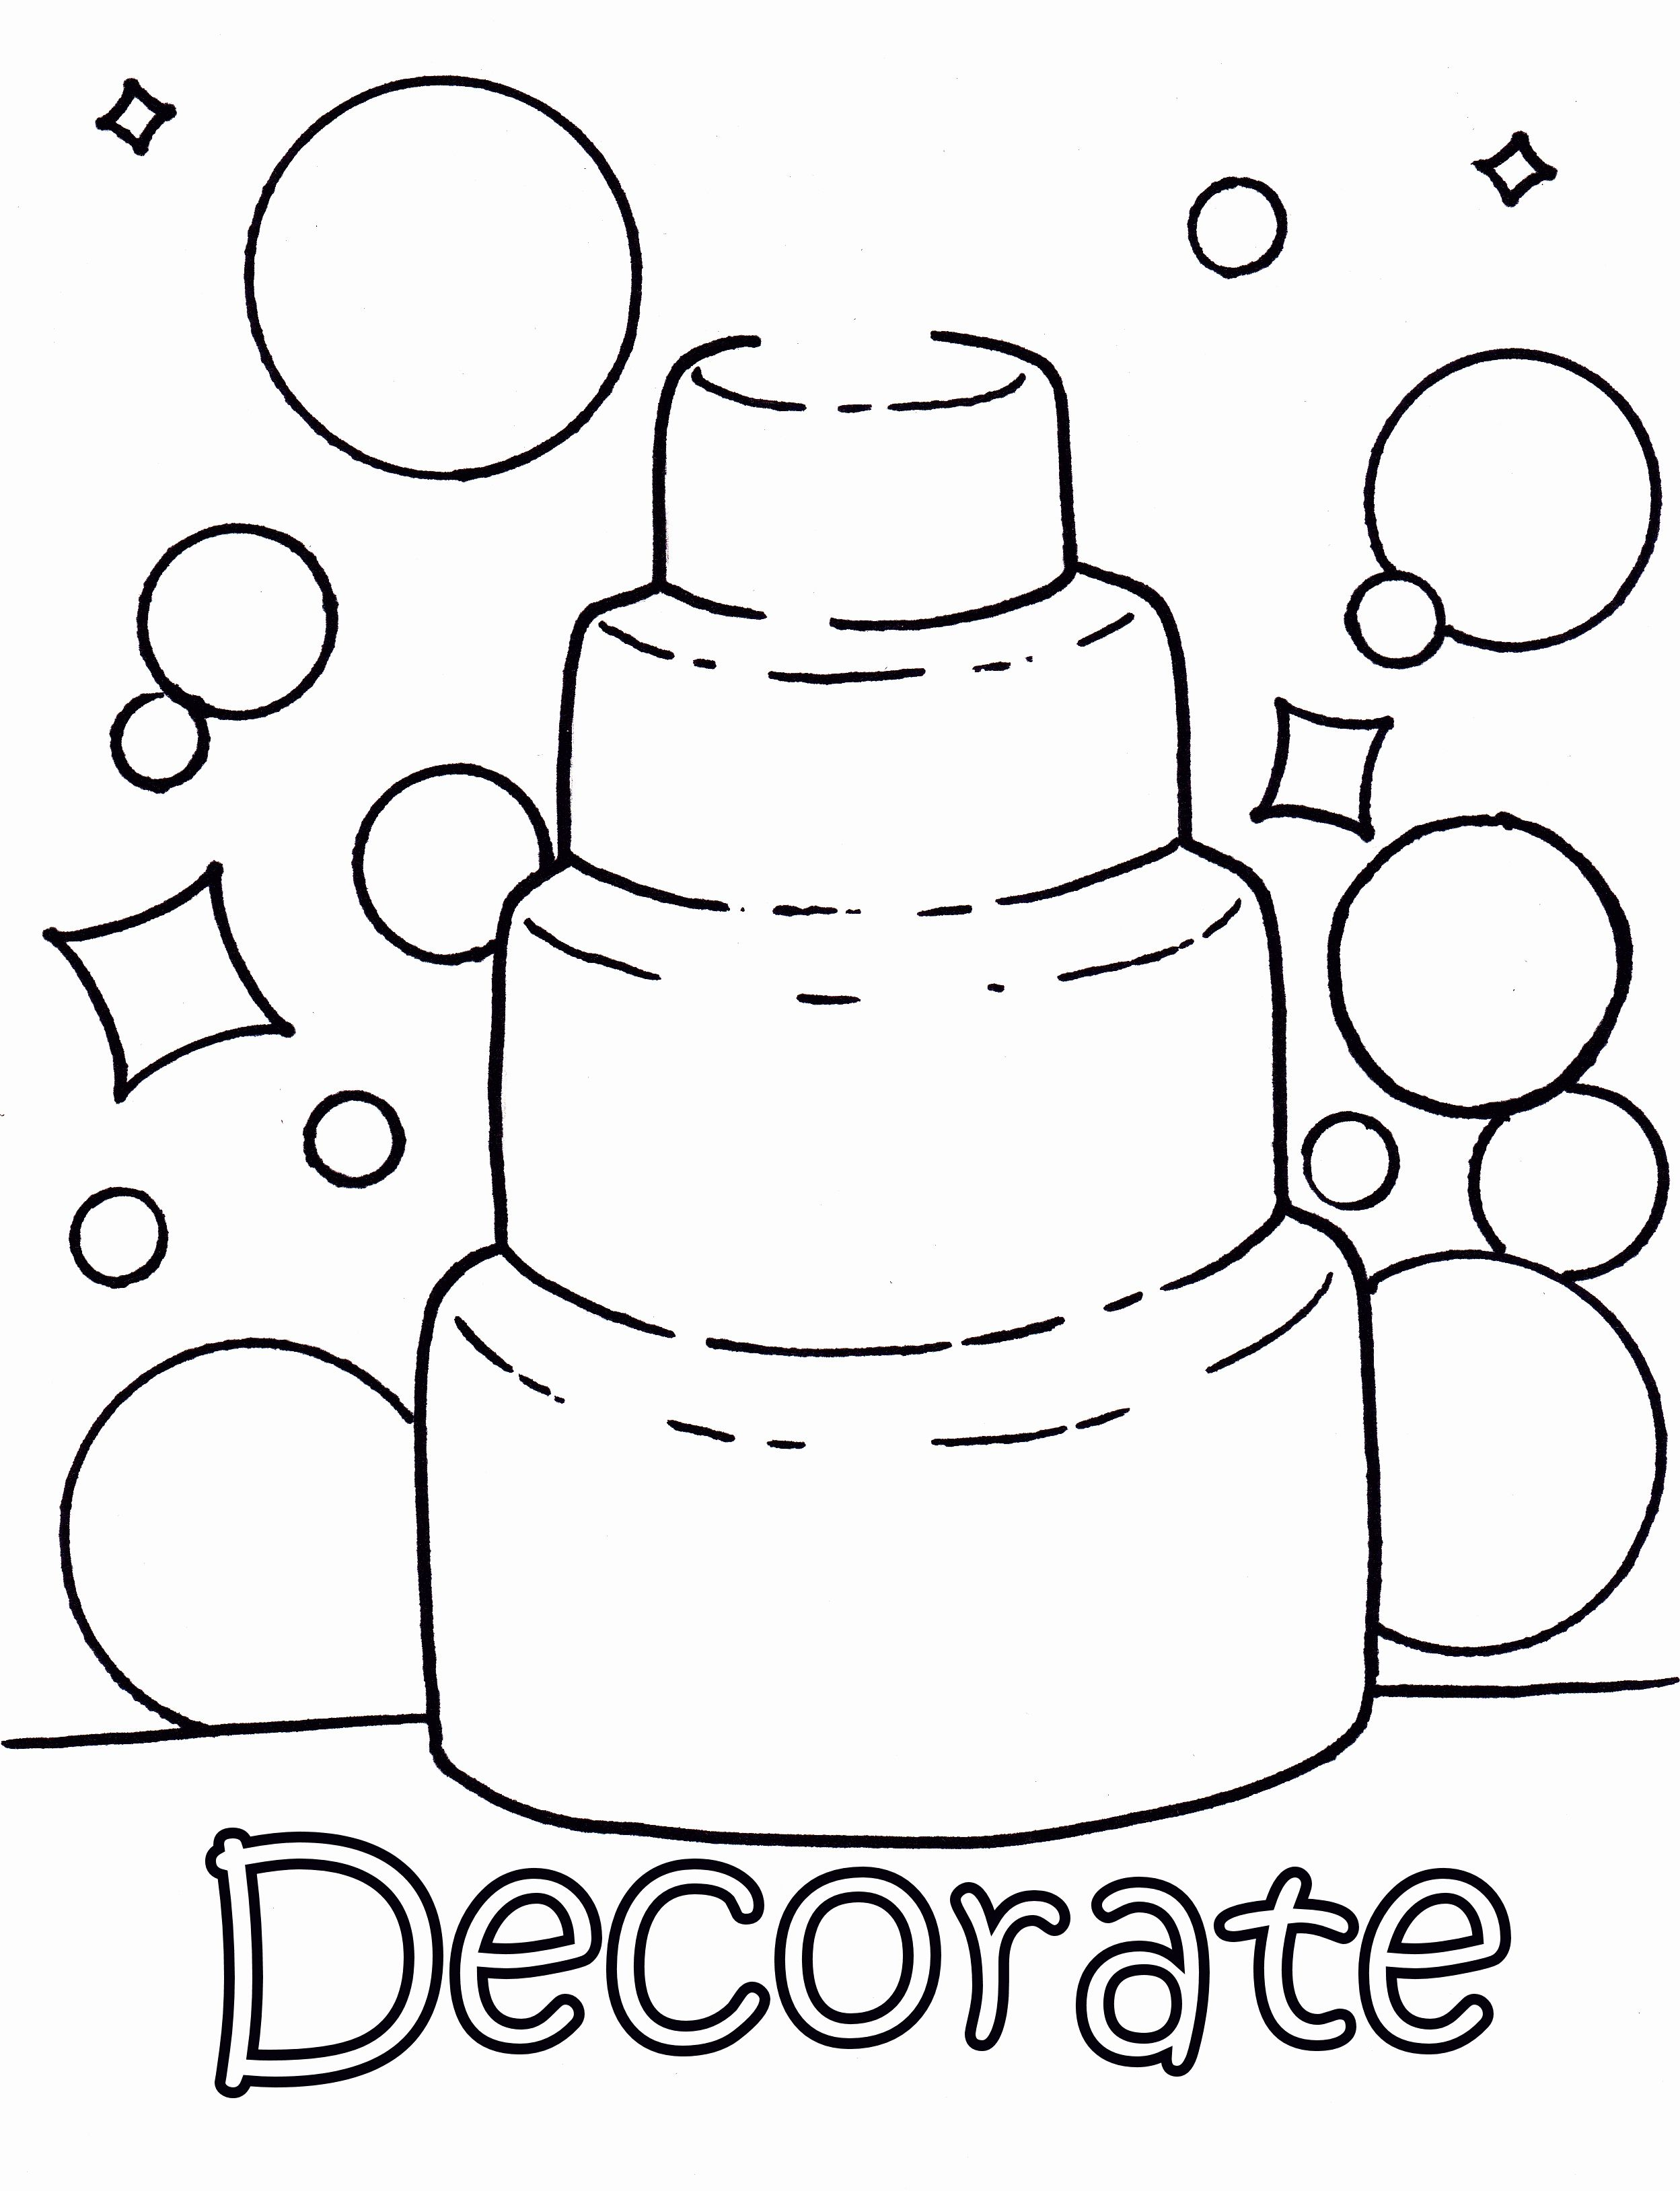 Disney Drawing Book Dora Lovely Coloring Pages Wedding Themed Coloring Books Free Wedding Coloring Pages Wedding With Kids Free Wedding Printables